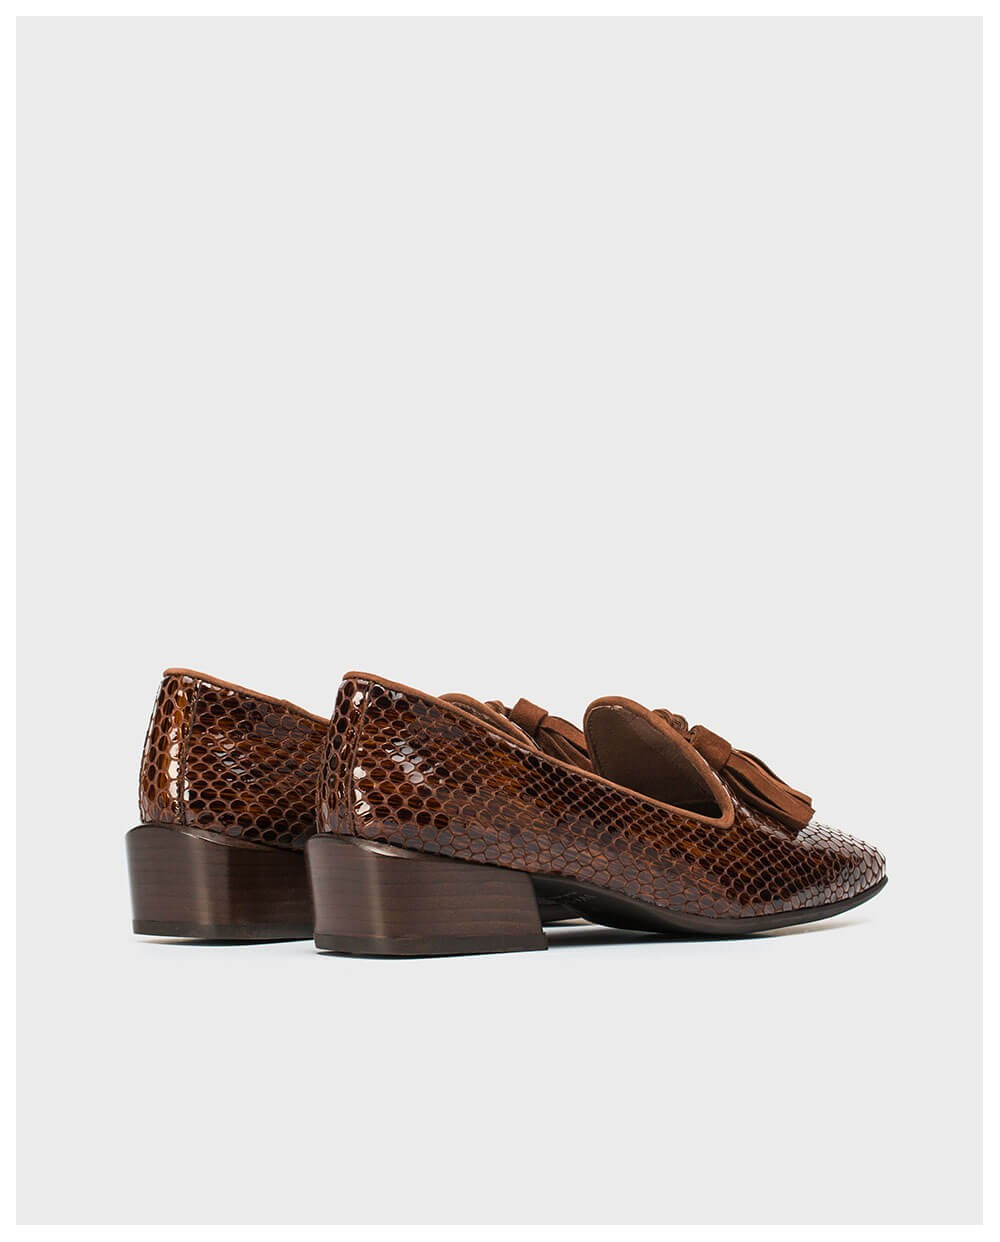 Wonders-Flat Shoes-Leather moccasin with tassels